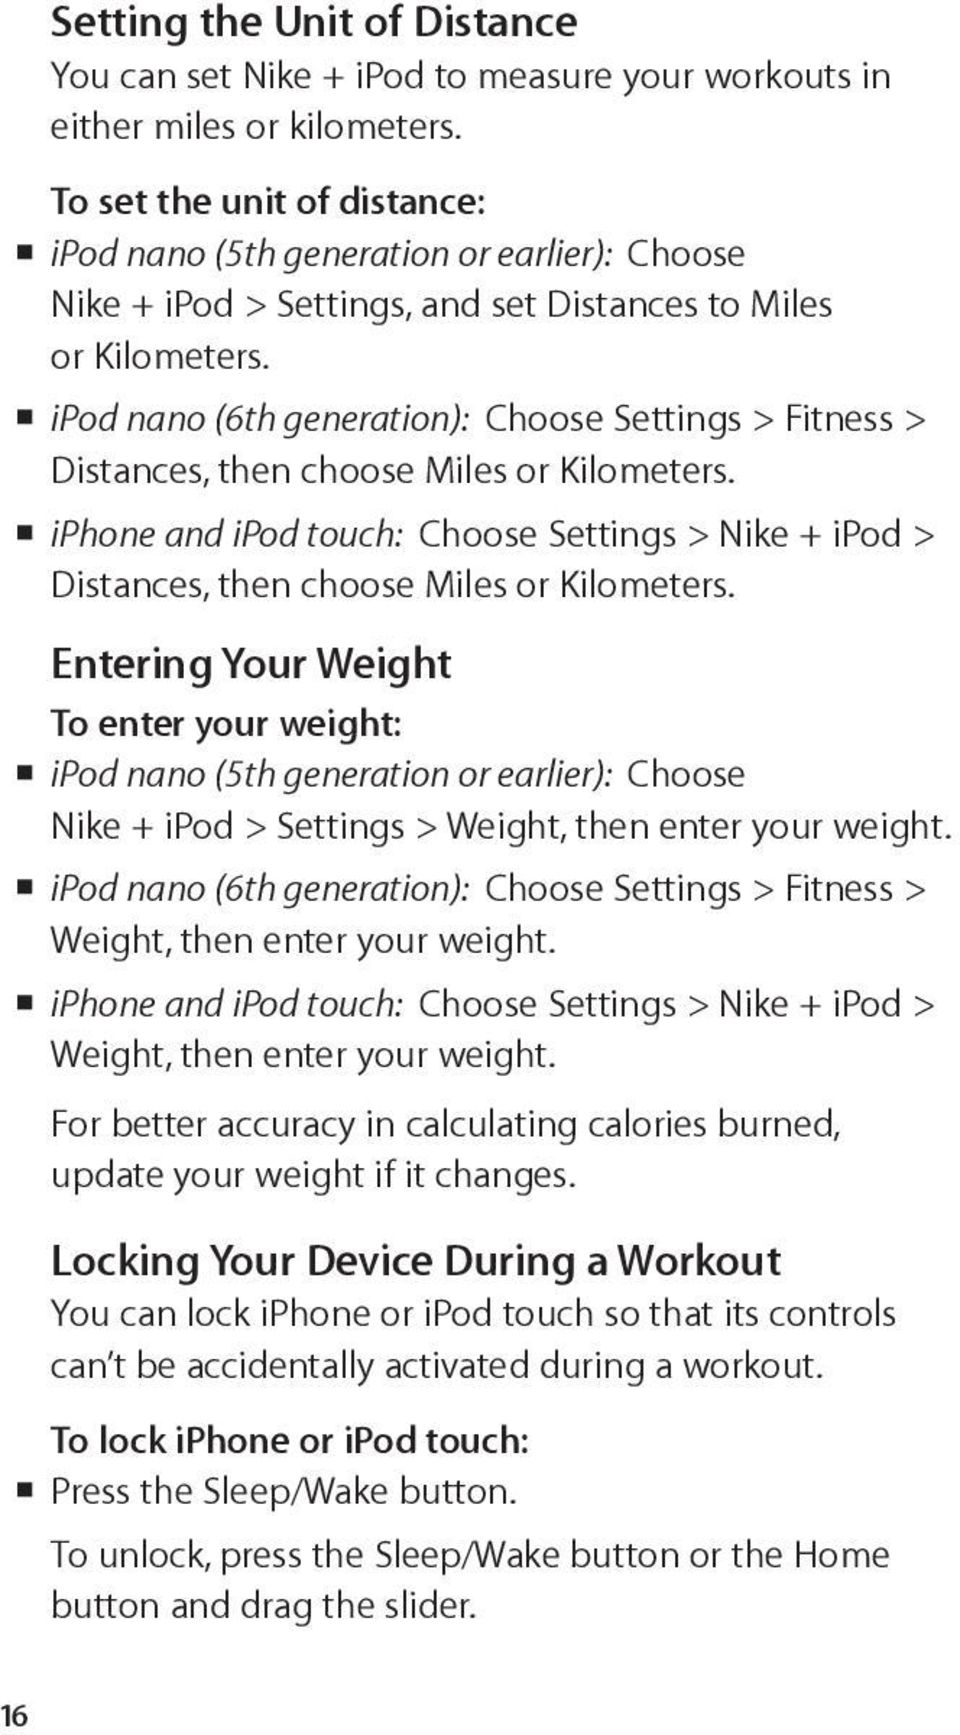 ipod nano (6th generation): Choose Settings > Fitness > Distances, then choose Miles or Kilometers. iphone and ipod touch: Choose Settings > Nike + ipod > Distances, then choose Miles or Kilometers.